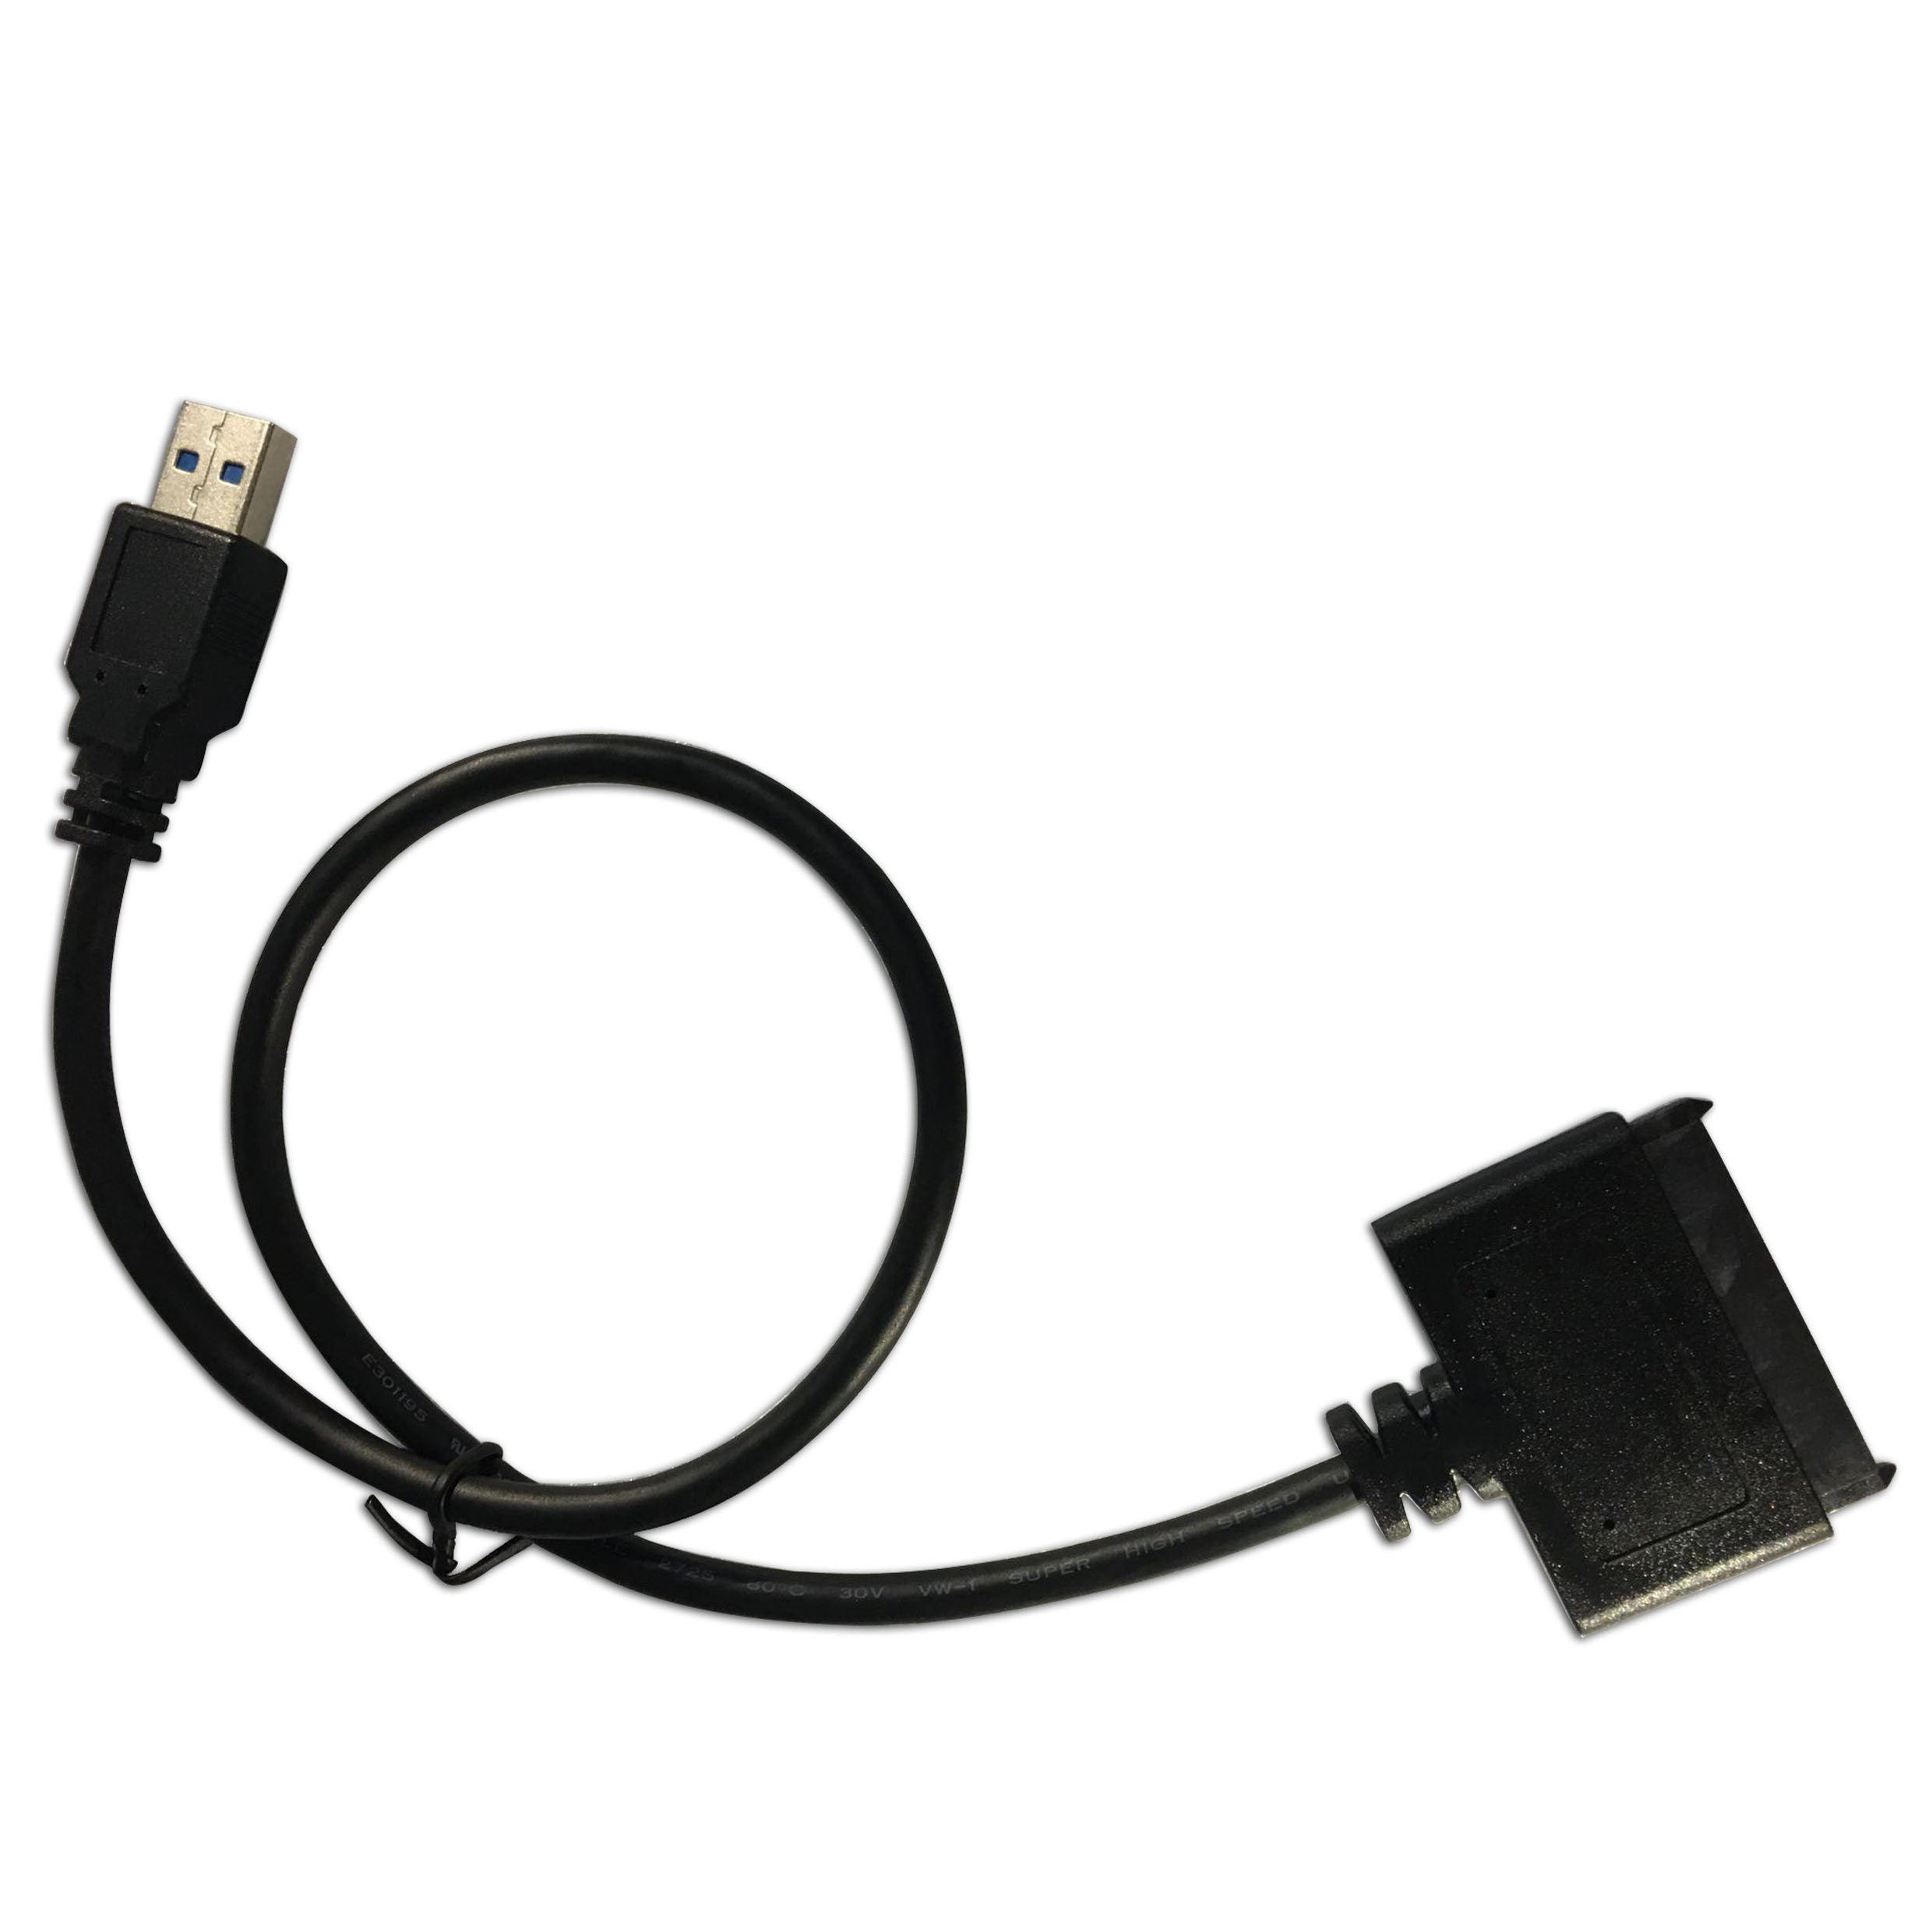 "StarTech.com USB 3.0 to 2.5"" SATA III Hard Drive Adapter Cable w/ UASP – SATA to USB 3.0 Converter for SSD/HDD - Hard Drive Adapter Cable by StarTech"